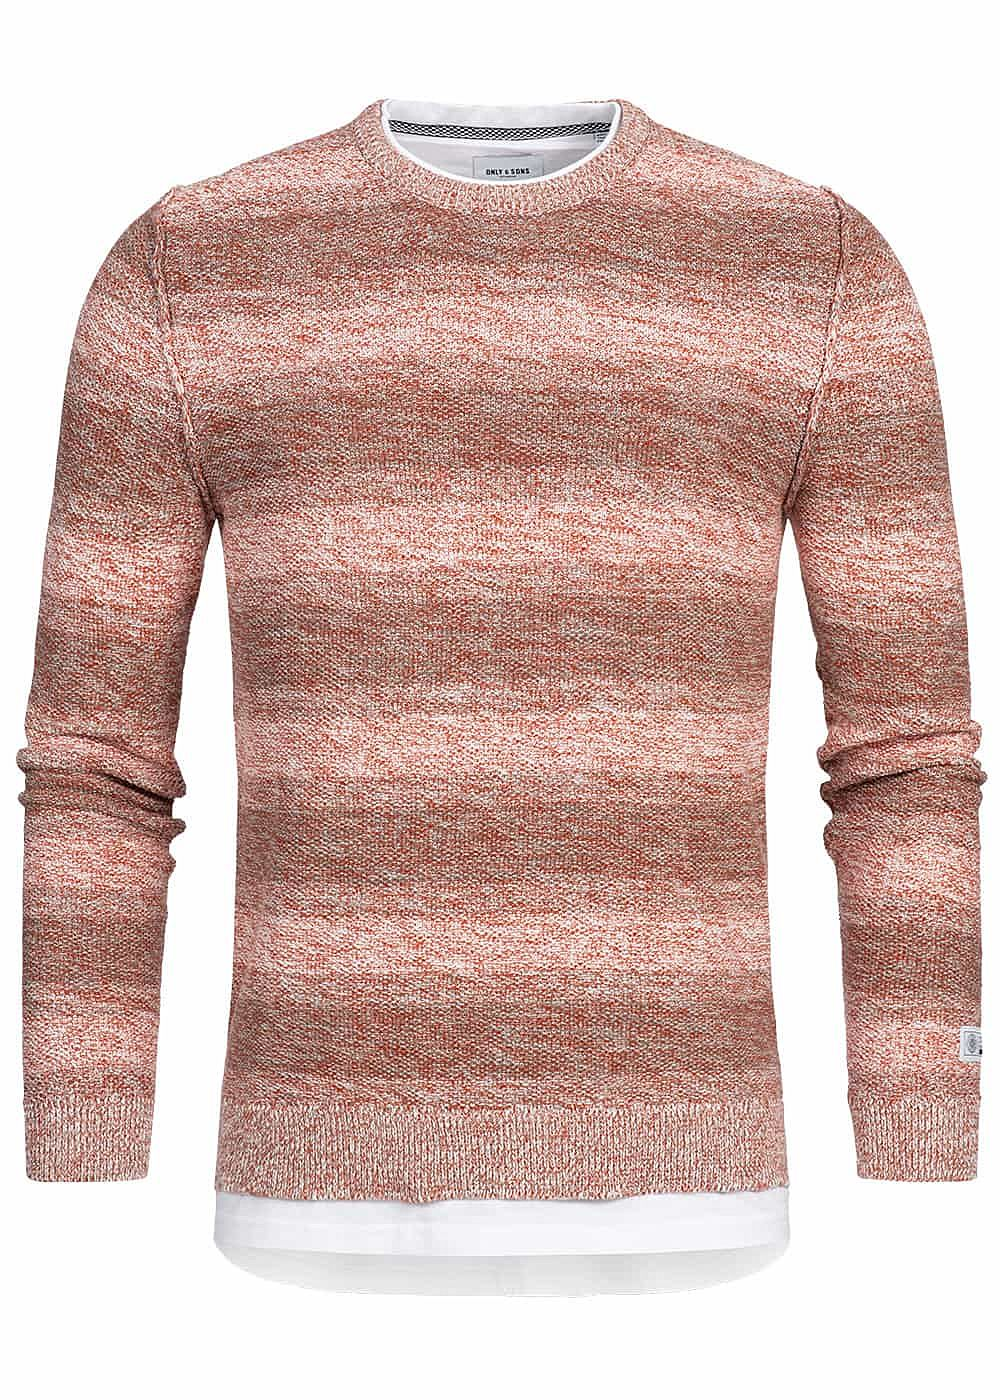 ONLY & SONS Herren Sweater 2in1 Optik rooibos tea rot - Art.-Nr.: 19010079-S-RE